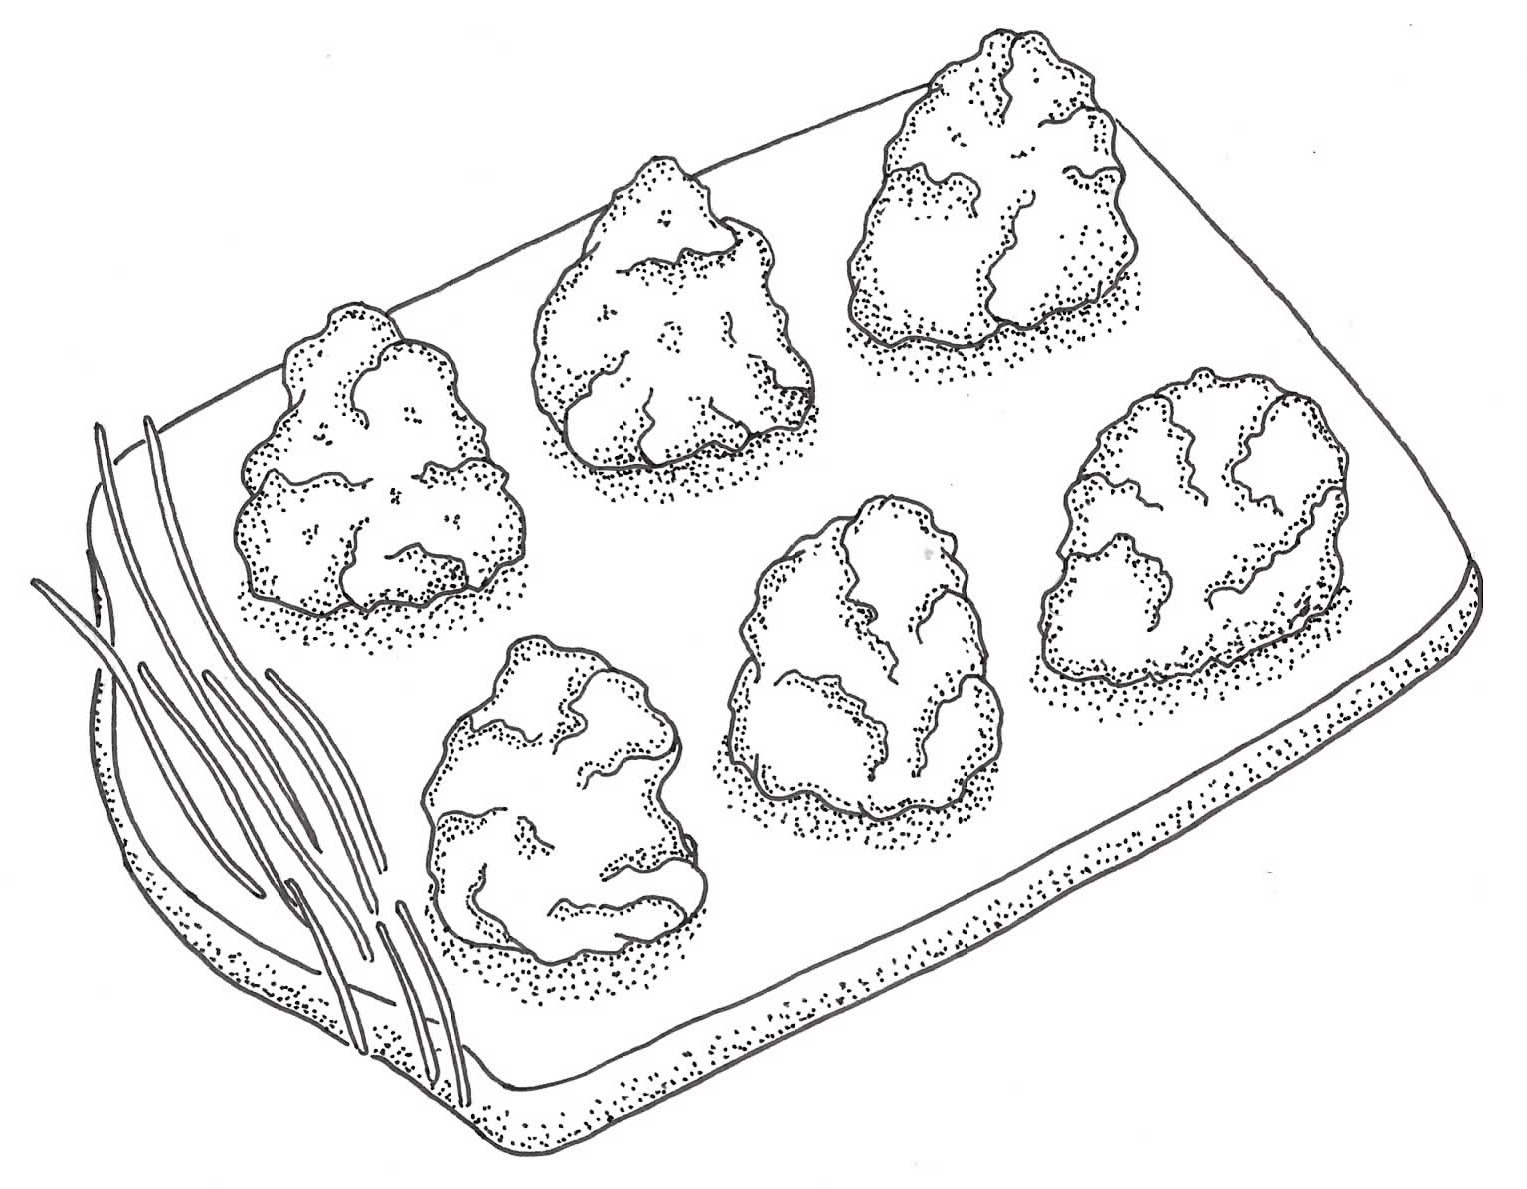 Drop biscuit illustration